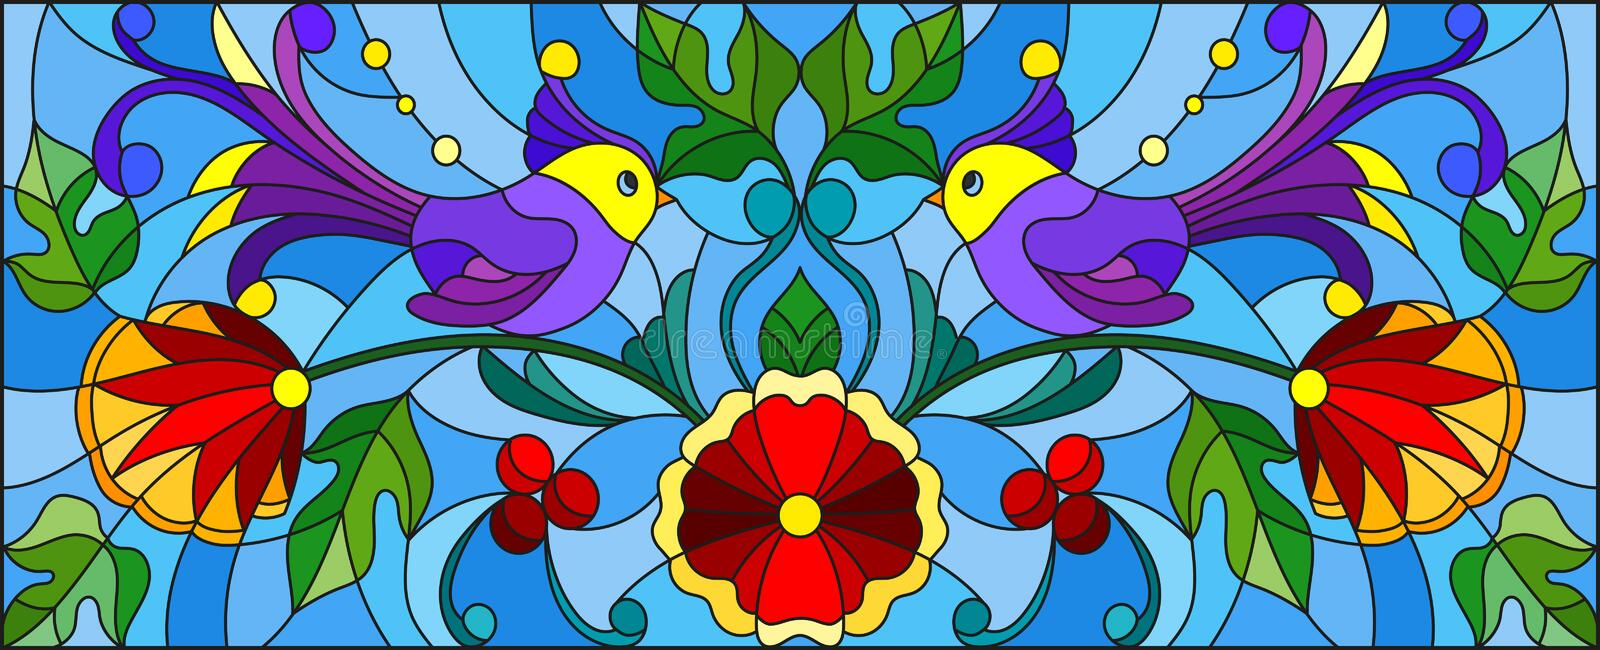 Stained glass illustration with a pair of abstract purple birds , flowers and patterns on a blue background , horizontal image stock illustration